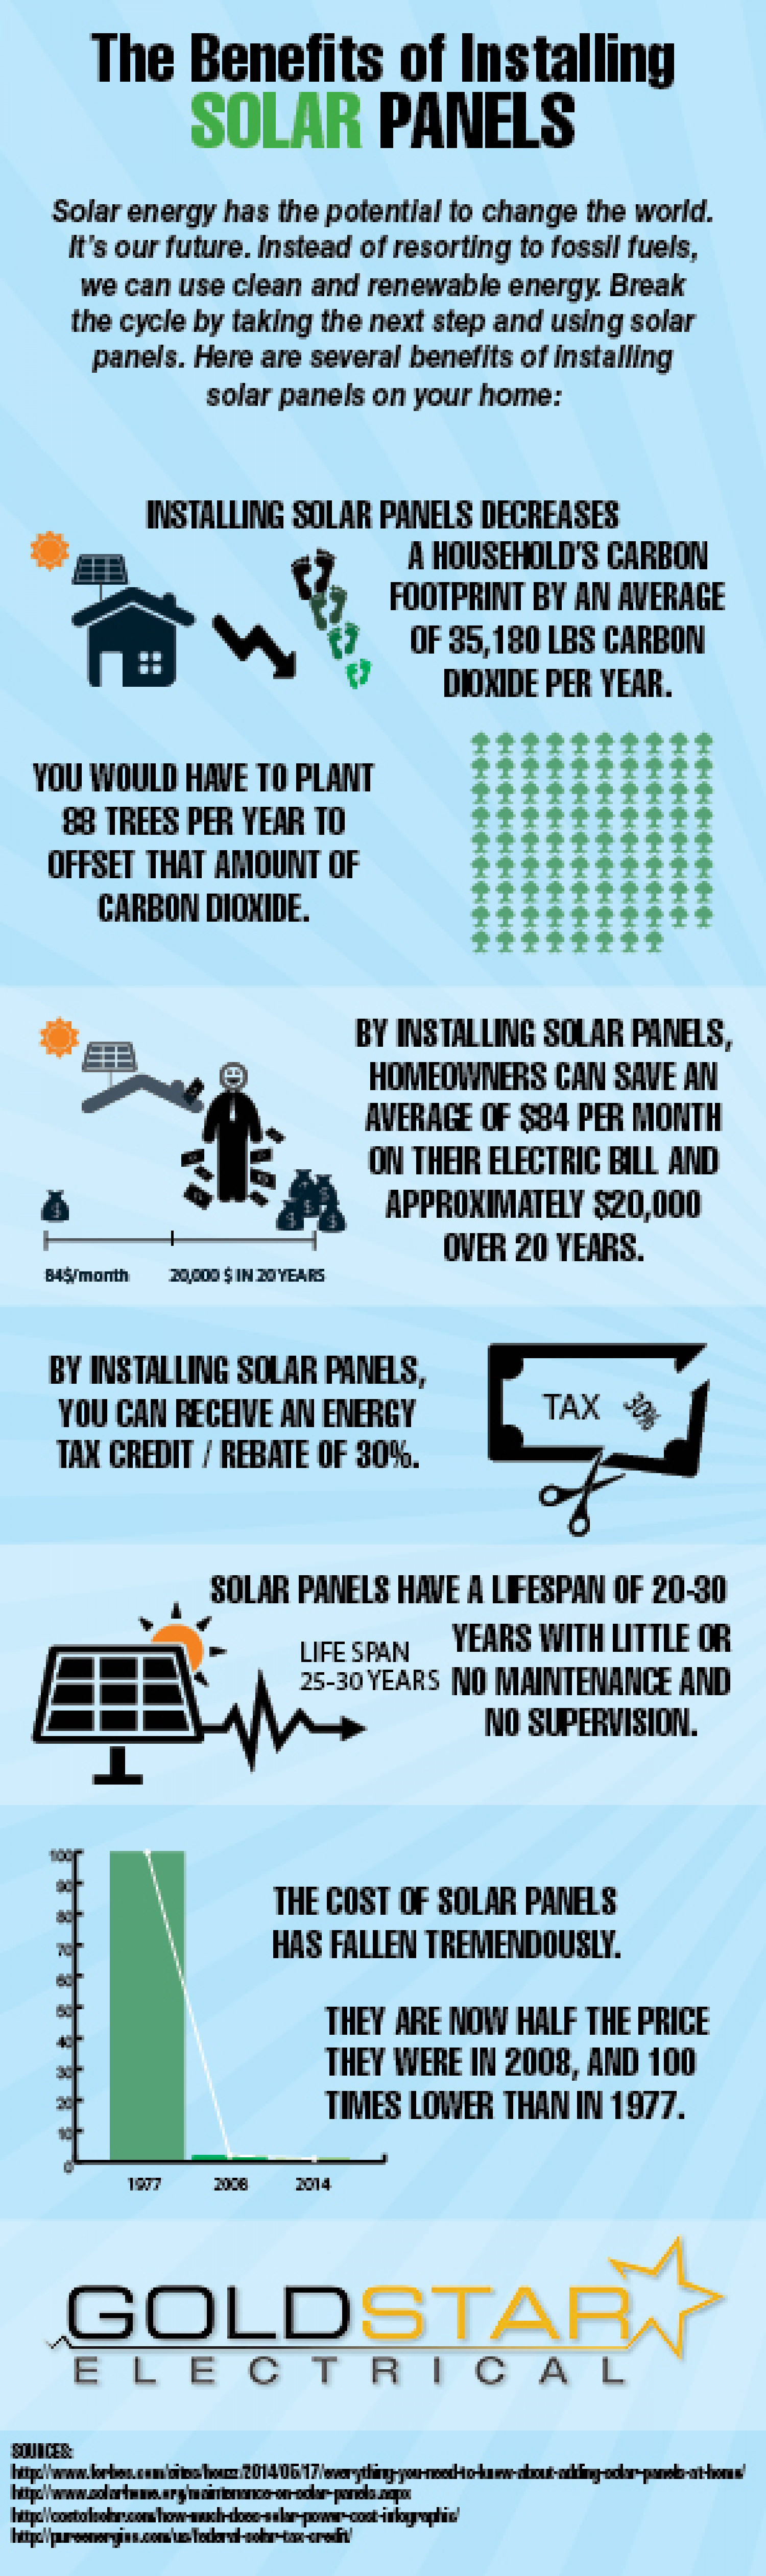 Benefits of Solar Panels Infographic